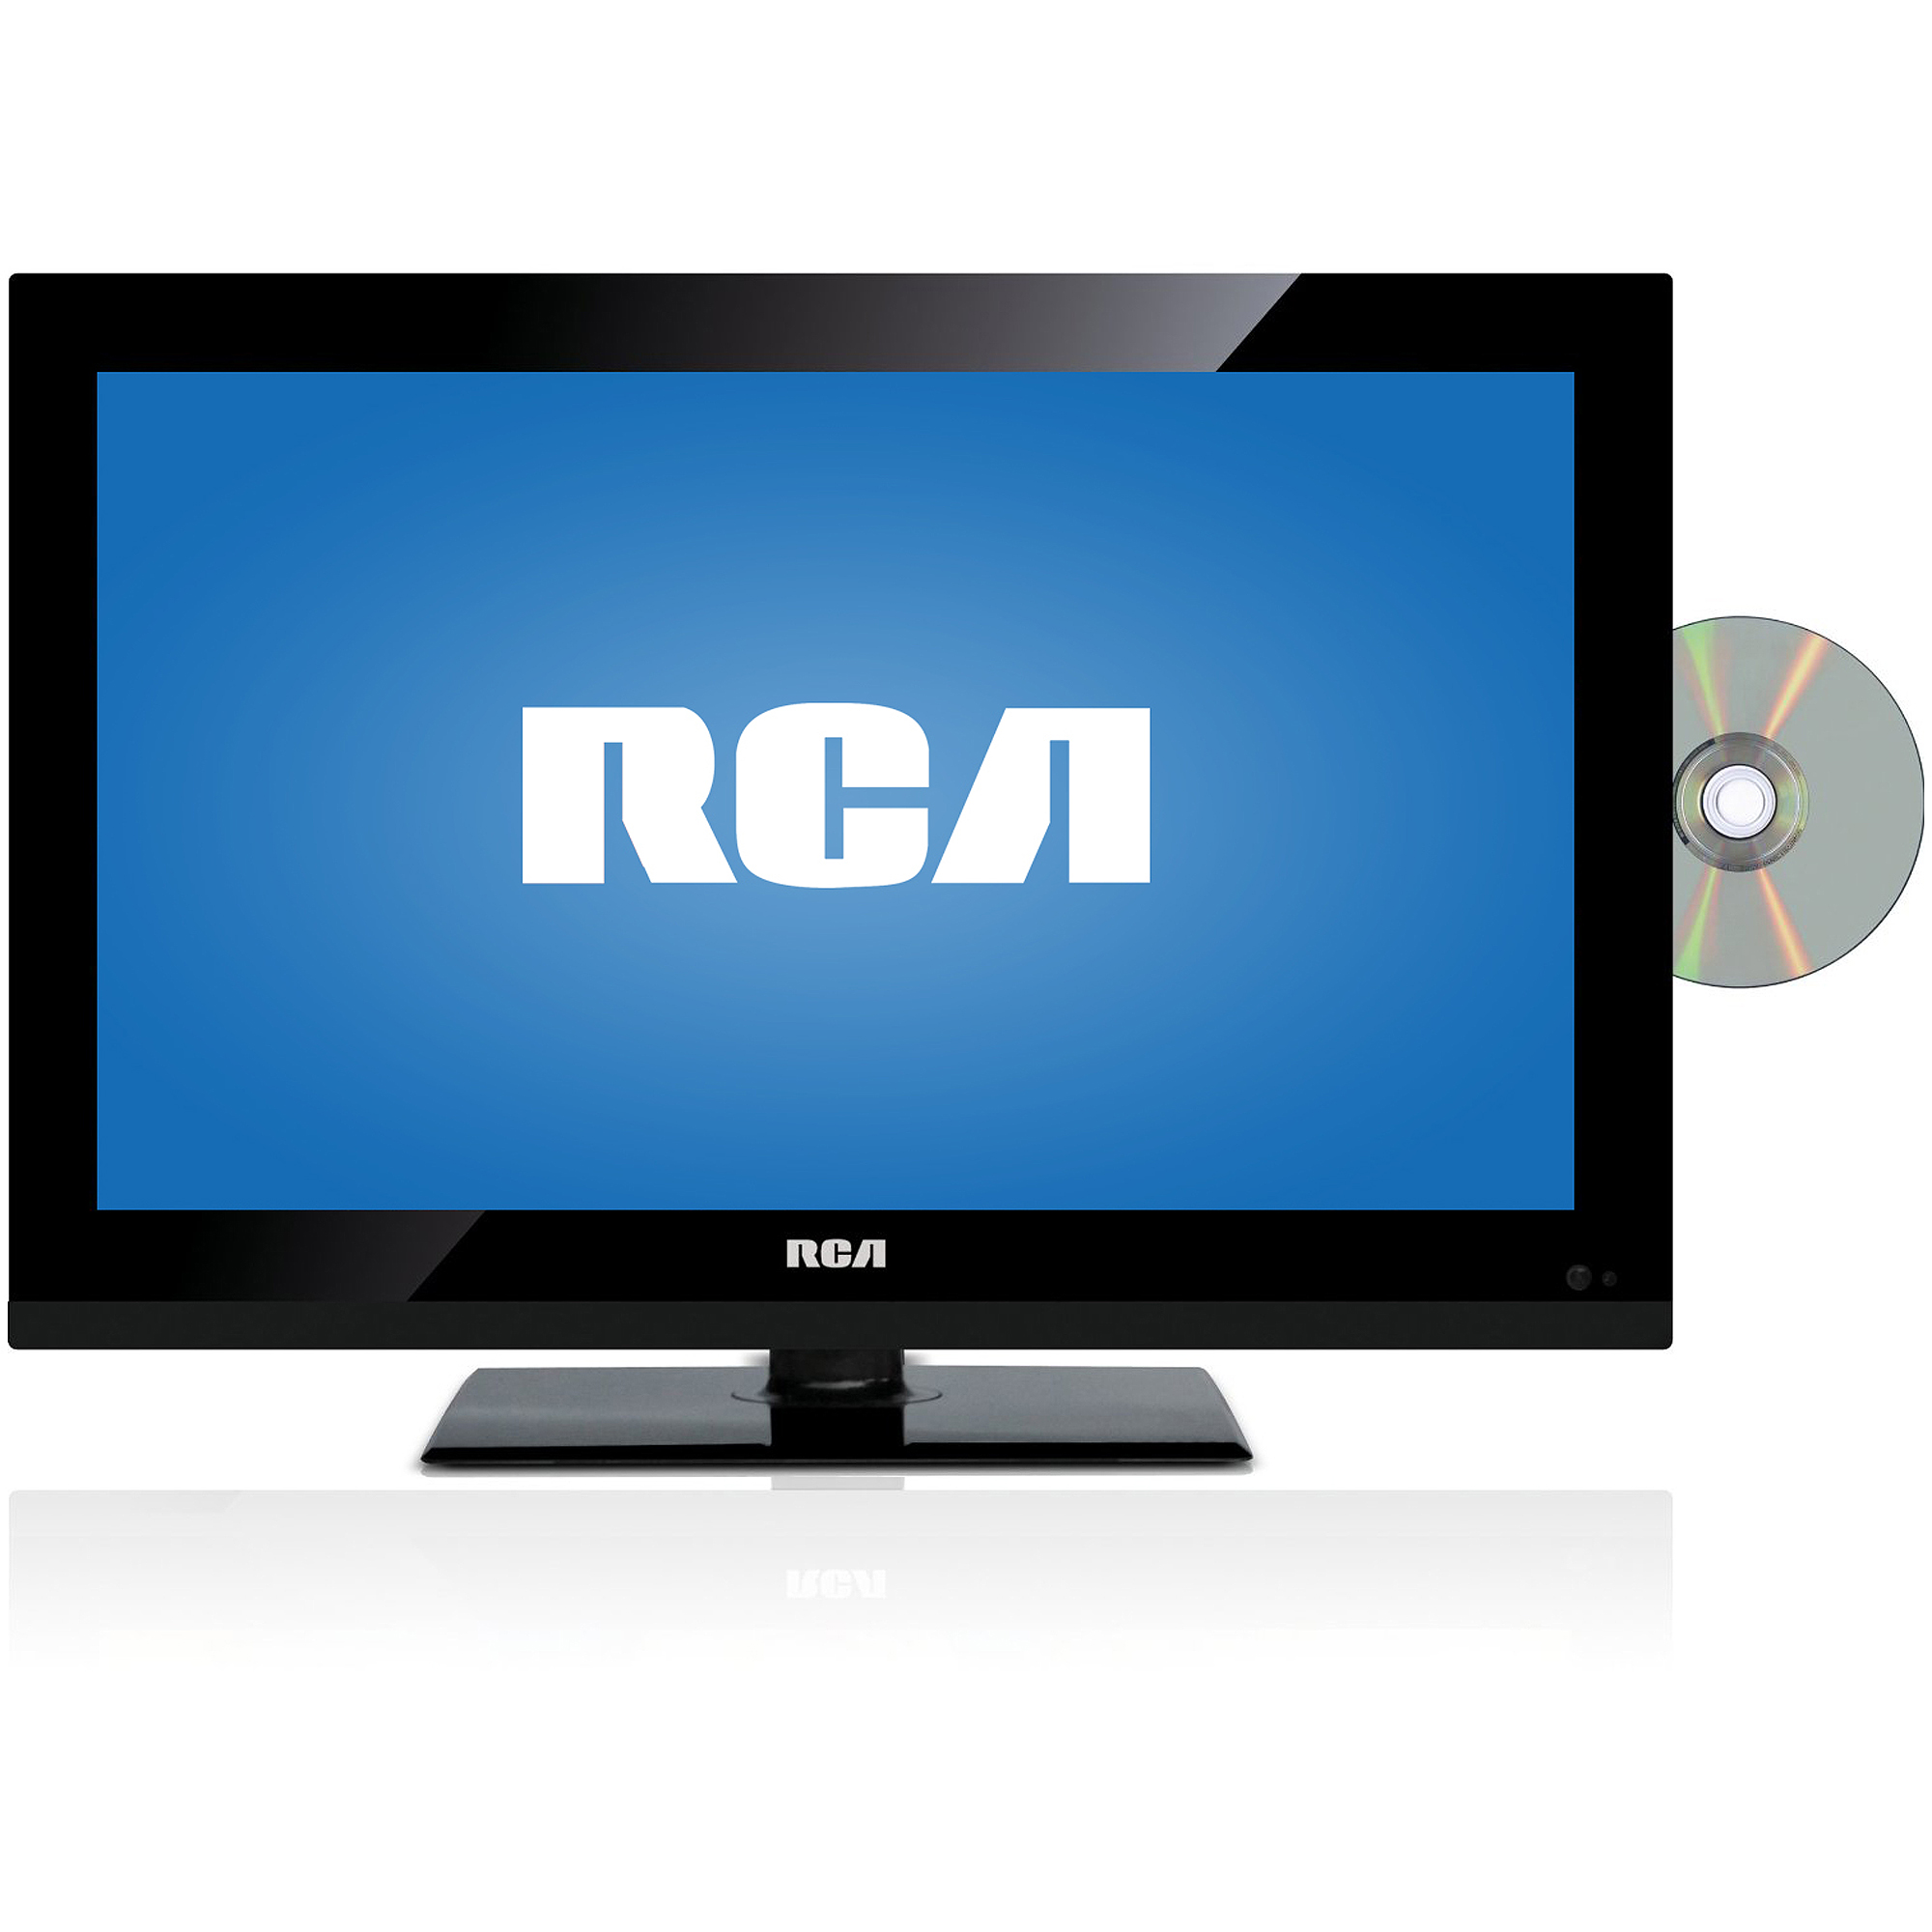 RCA DECK185R 19 720p 60Hz Class LED HDTV / DVD Combo, Refurbished